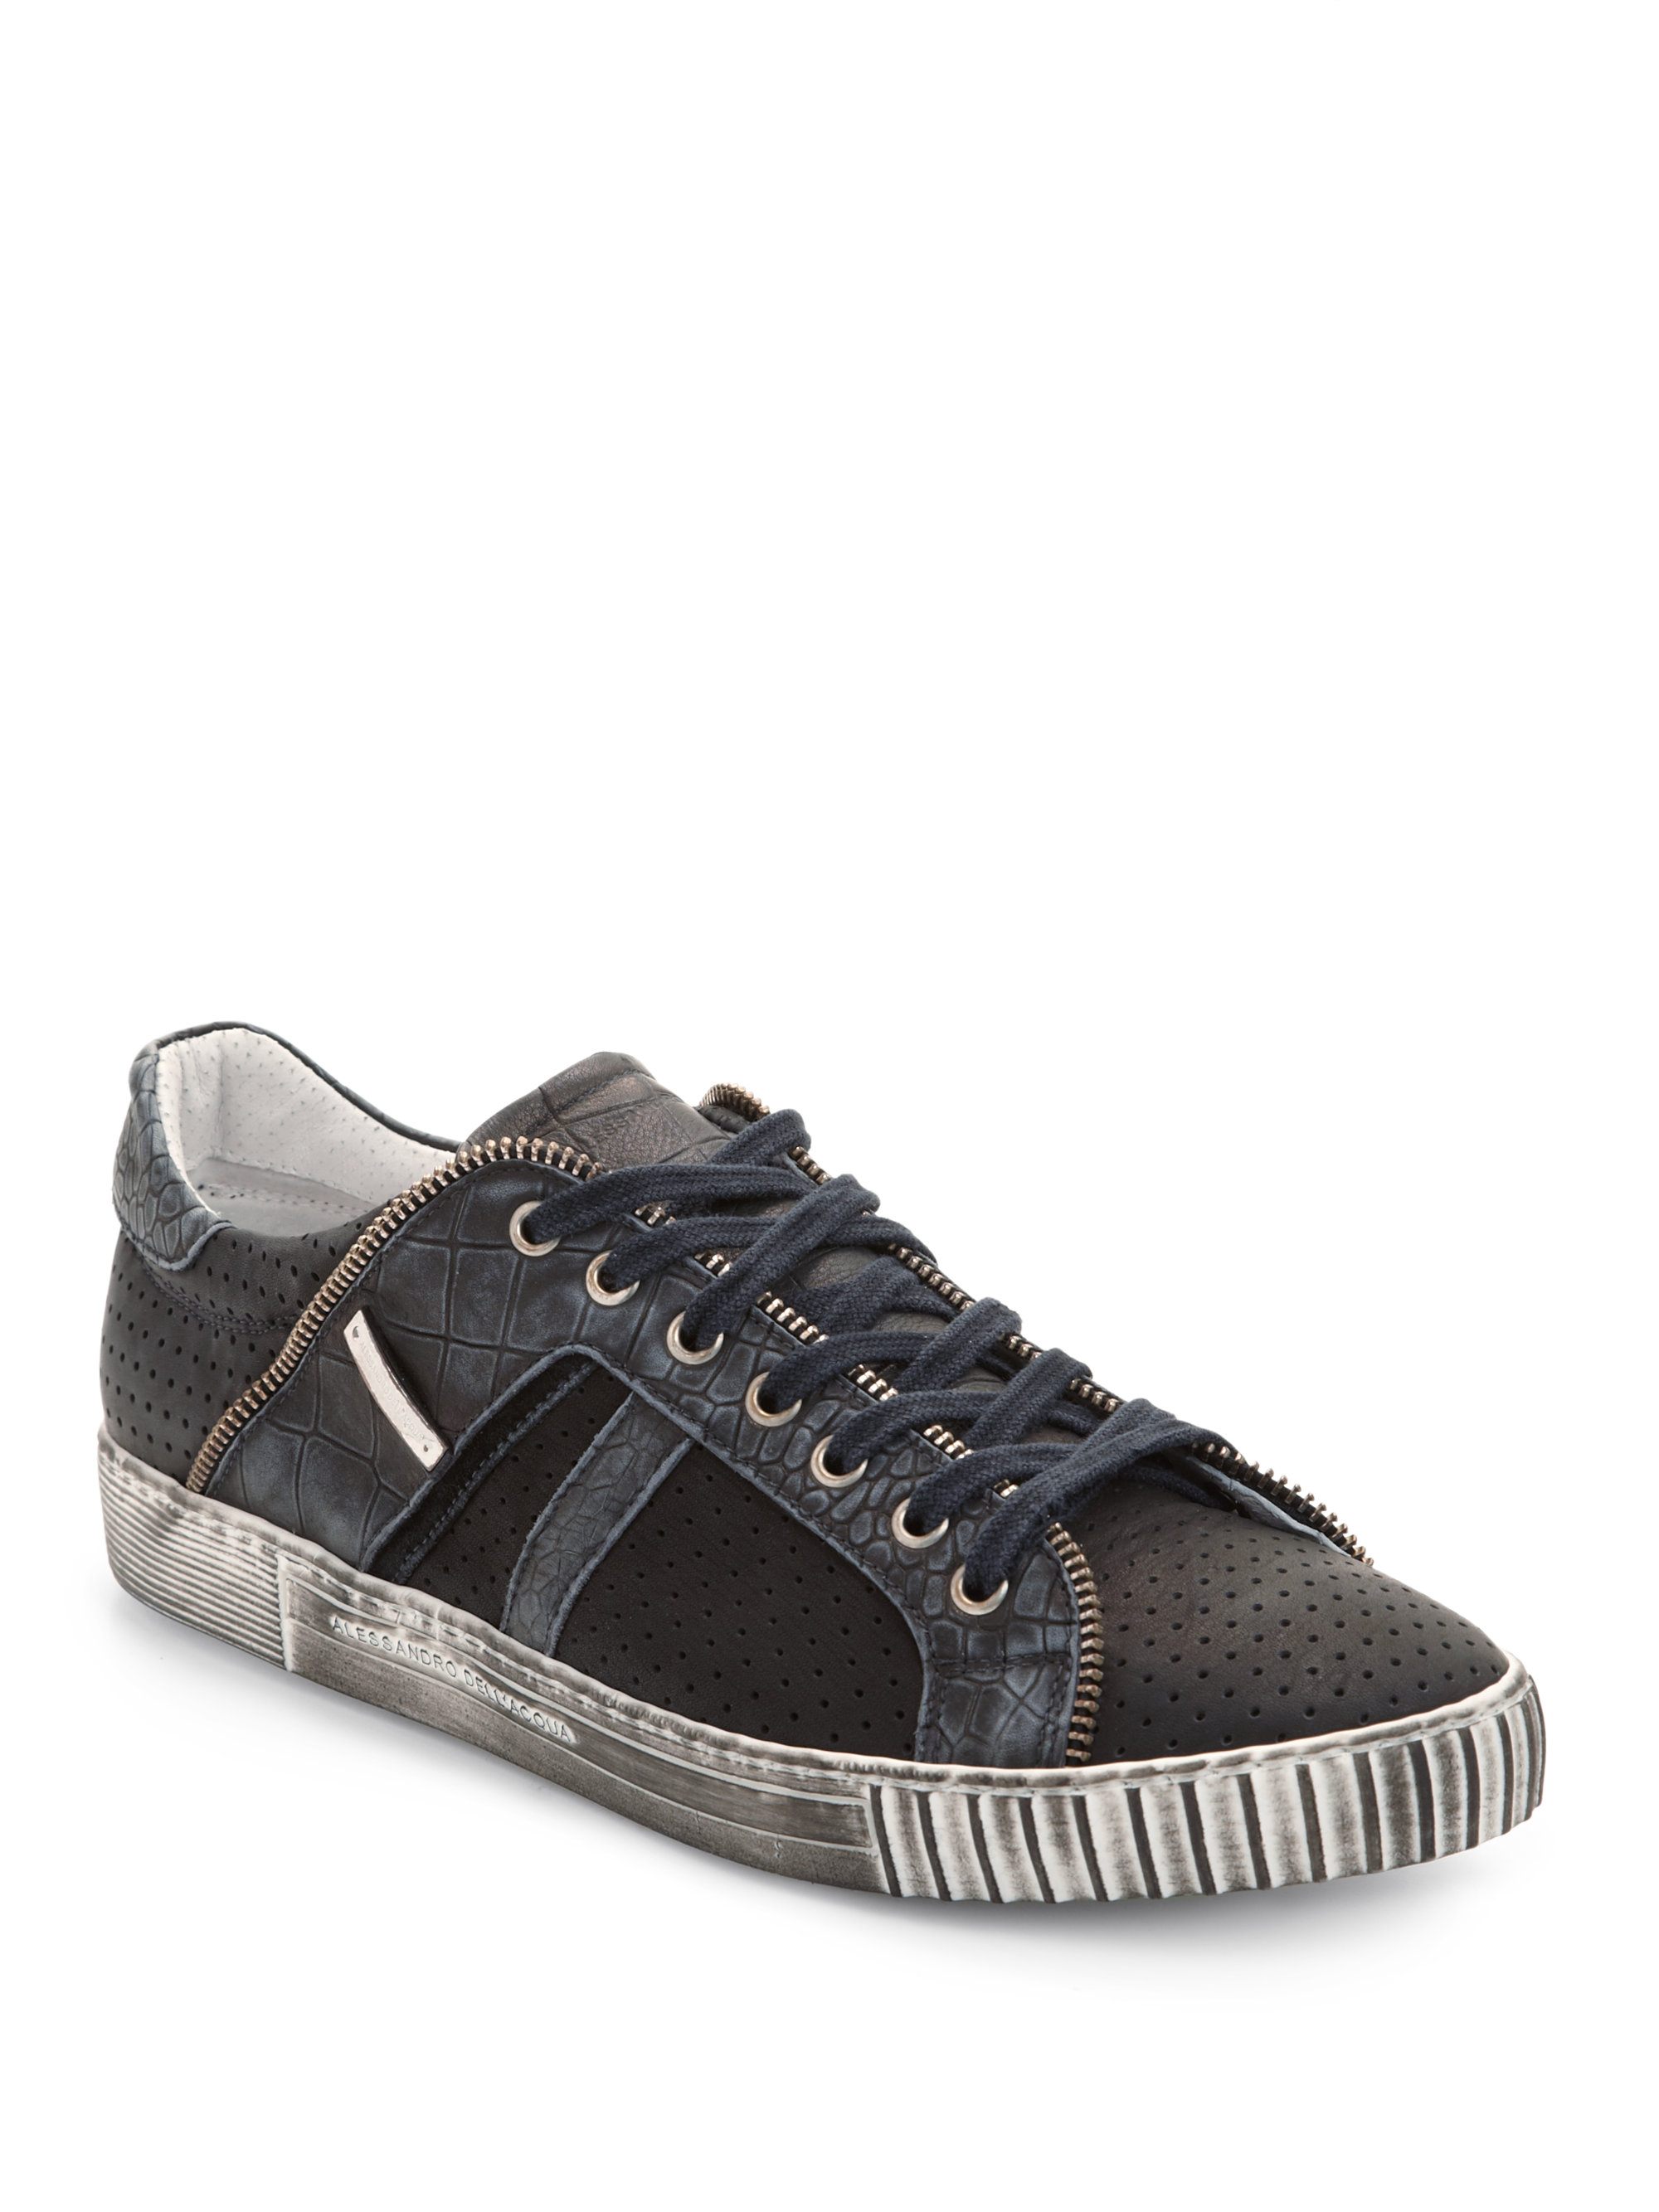 FOOTWEAR - Low-tops & sneakers Alessandro Dell´Acqua 1CwfoF